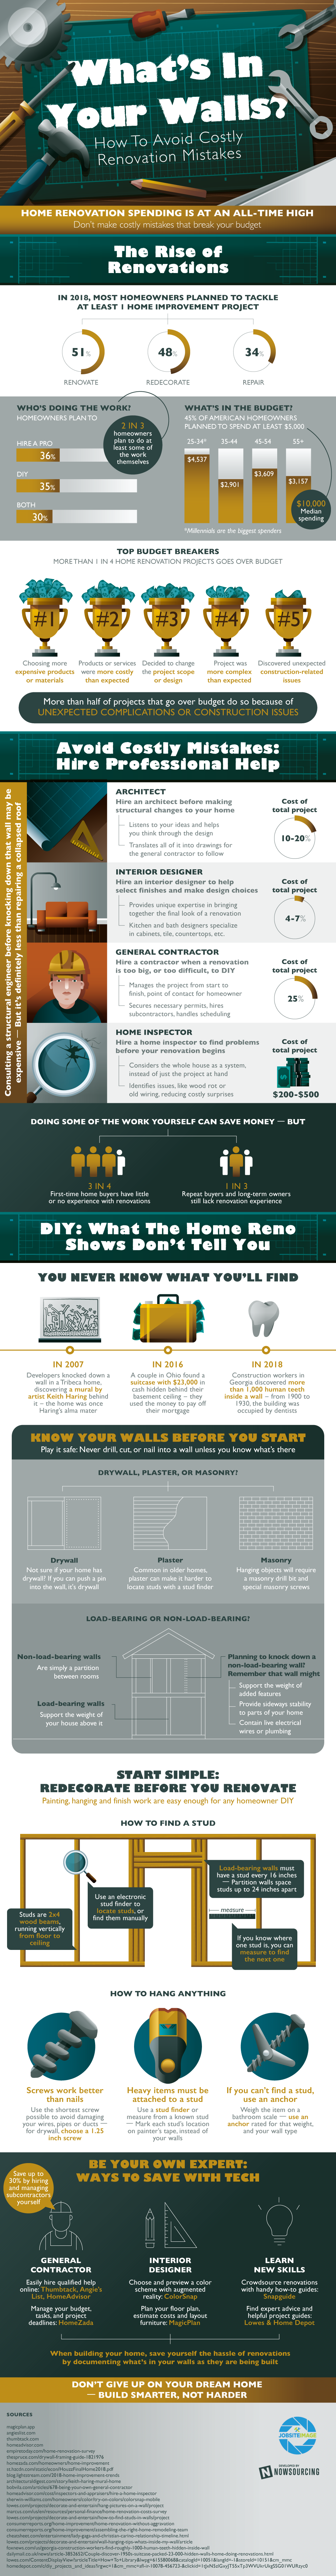 What's In Your Walls? How to Avoid Costly Renovation Mistakes